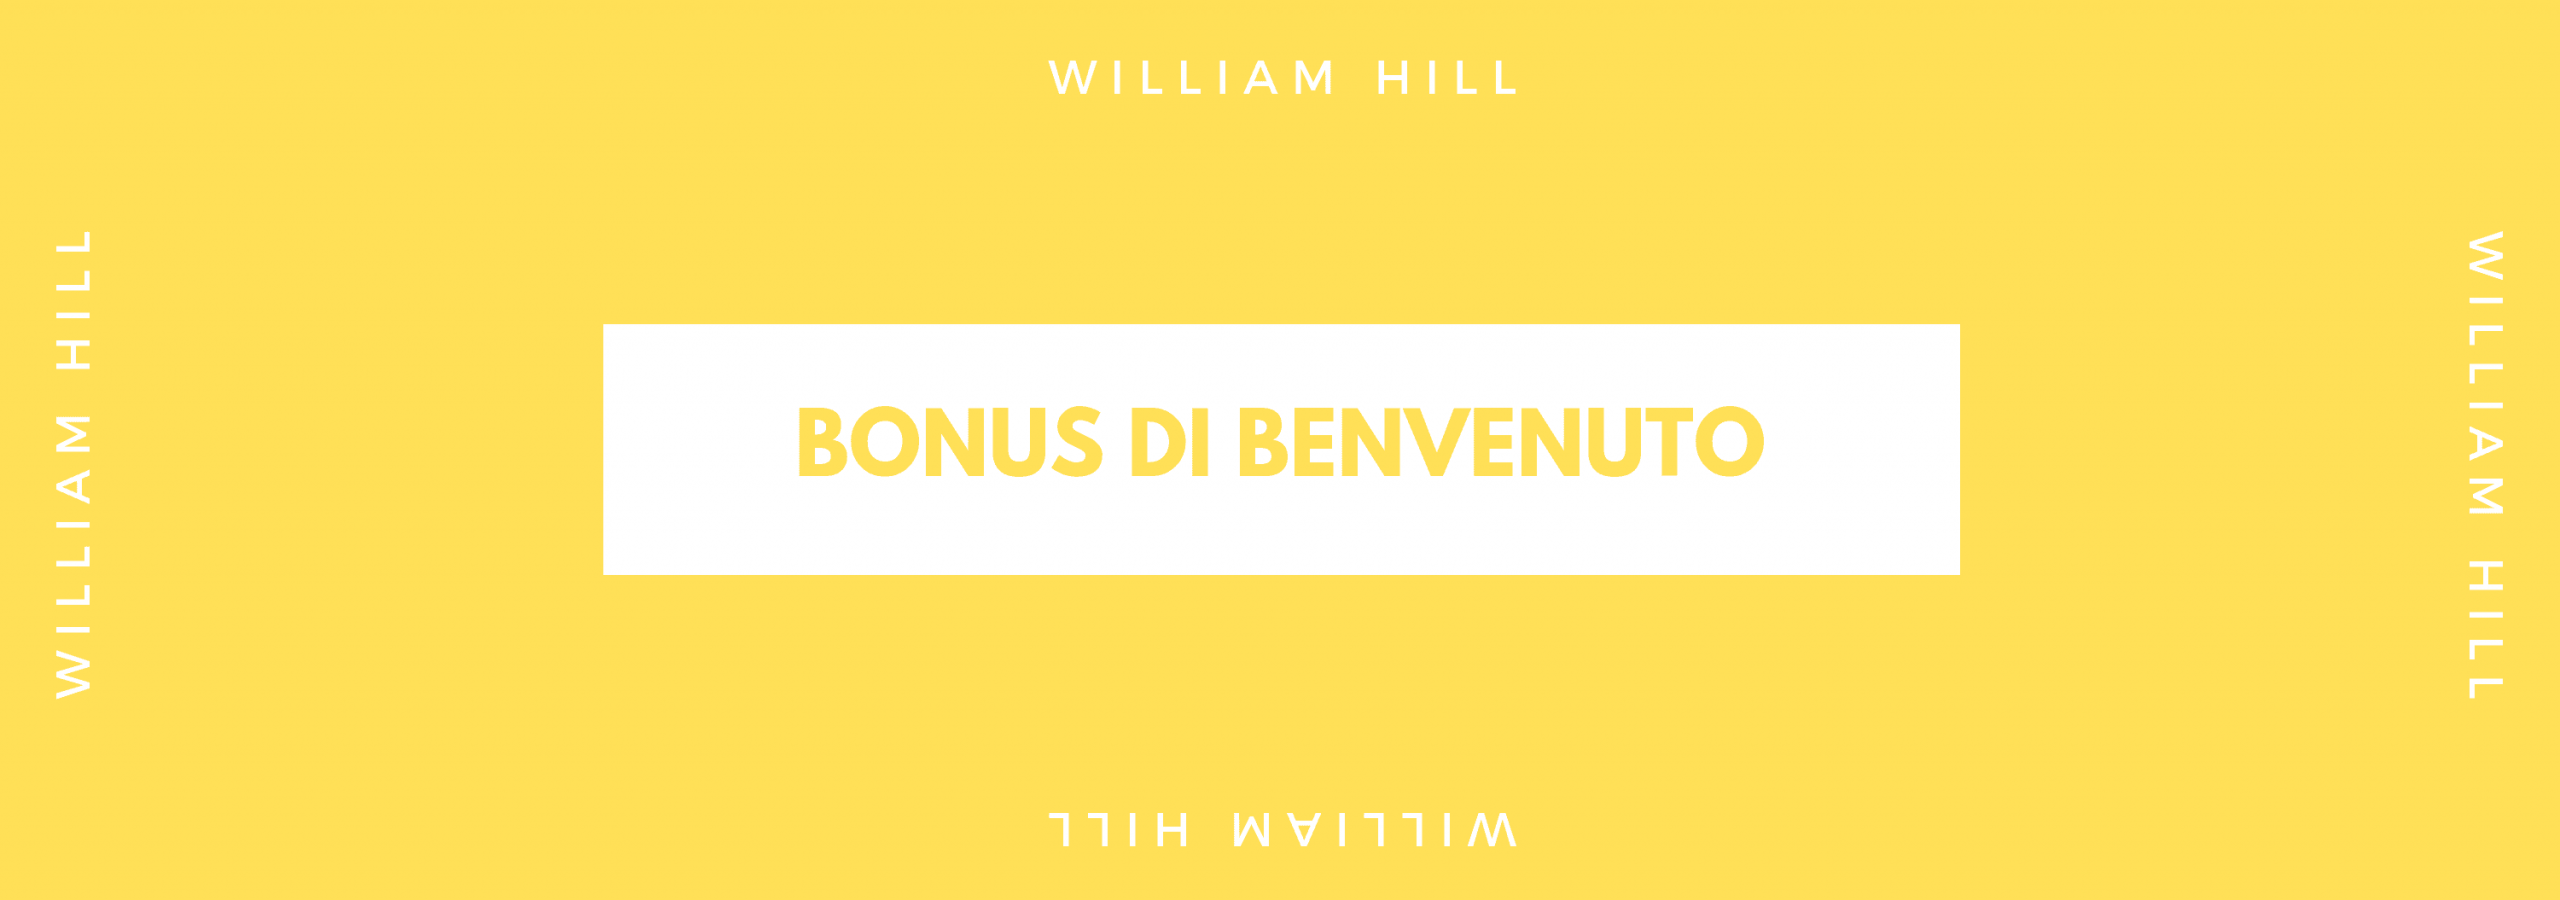 bonus di benvenuto william hill 1